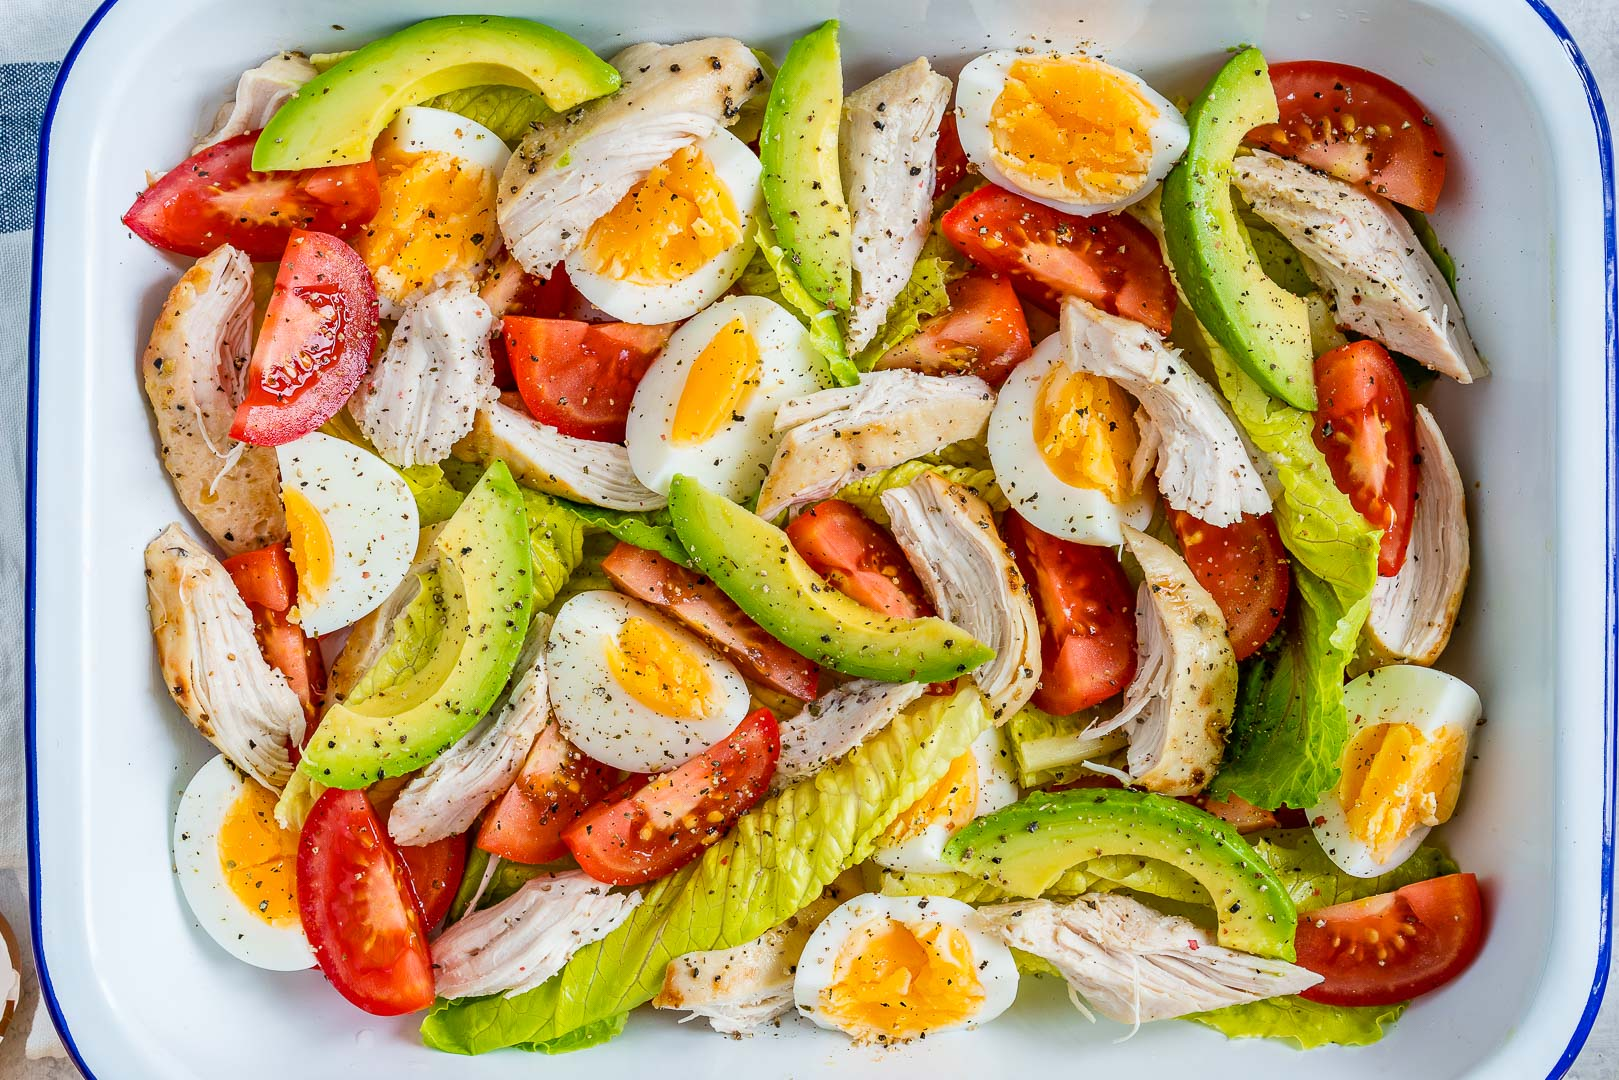 Chicken Avocado + Egg Salad